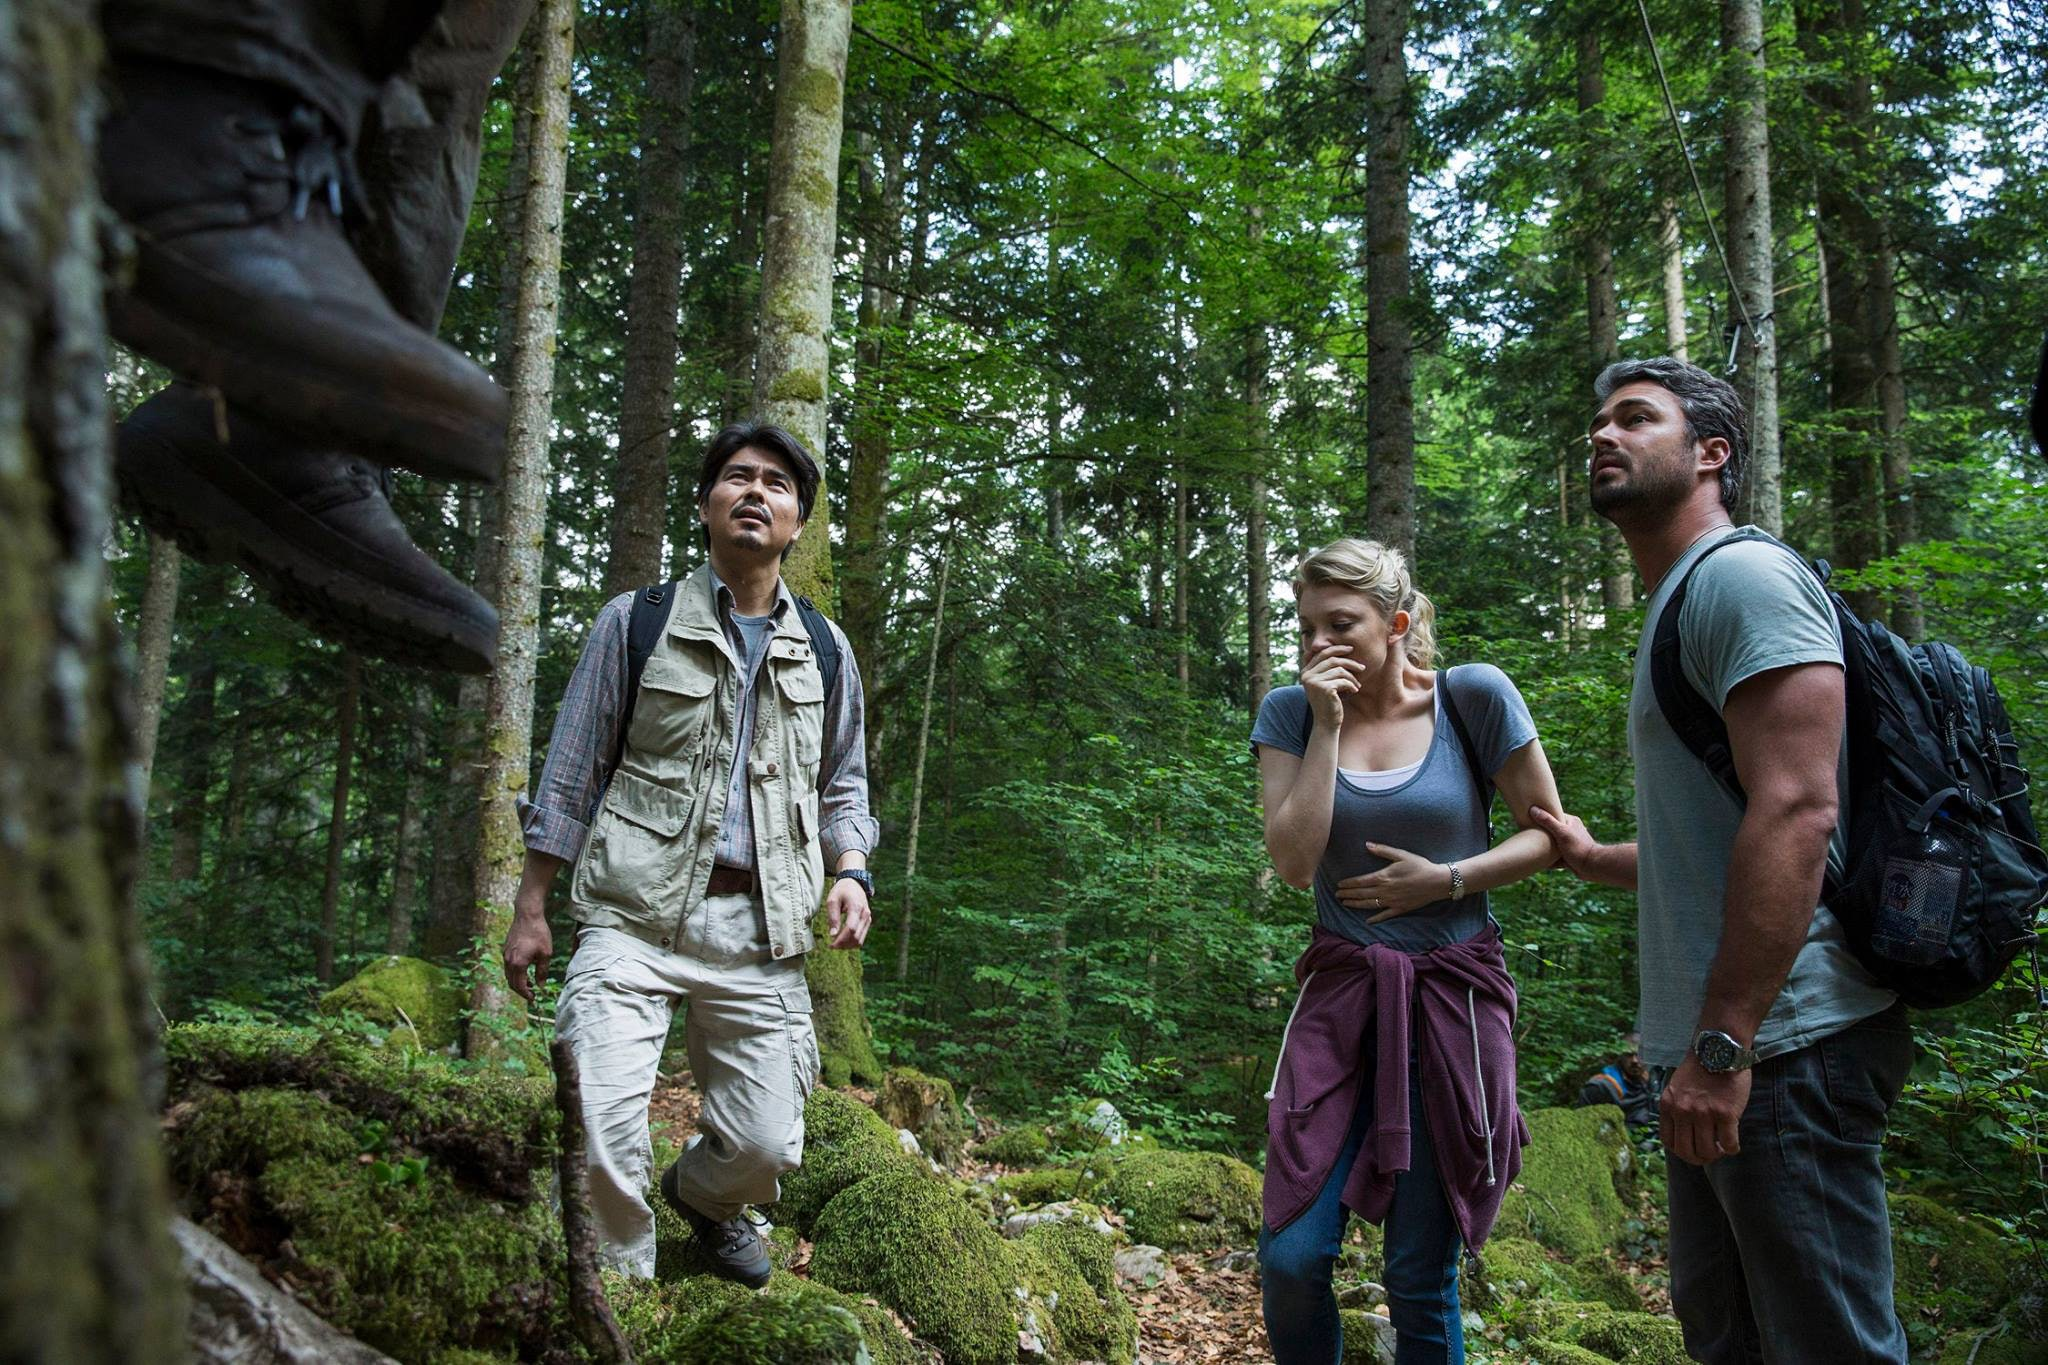 Is 'The Forest' Scary? Natalie Dormer's New Horror Flick Is